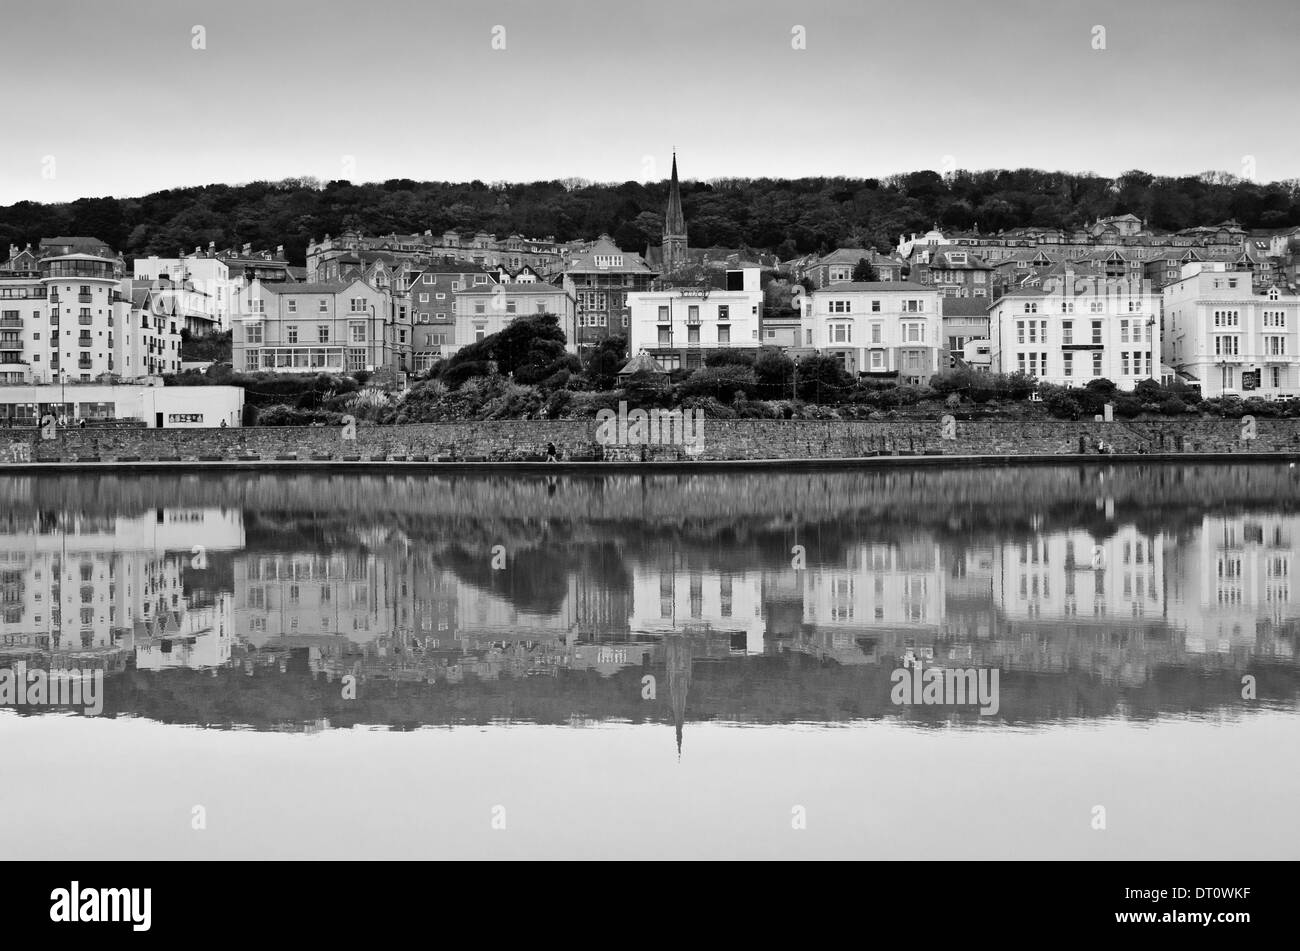 A view of Weston-super-Mare across the Marine Lake - Stock Image